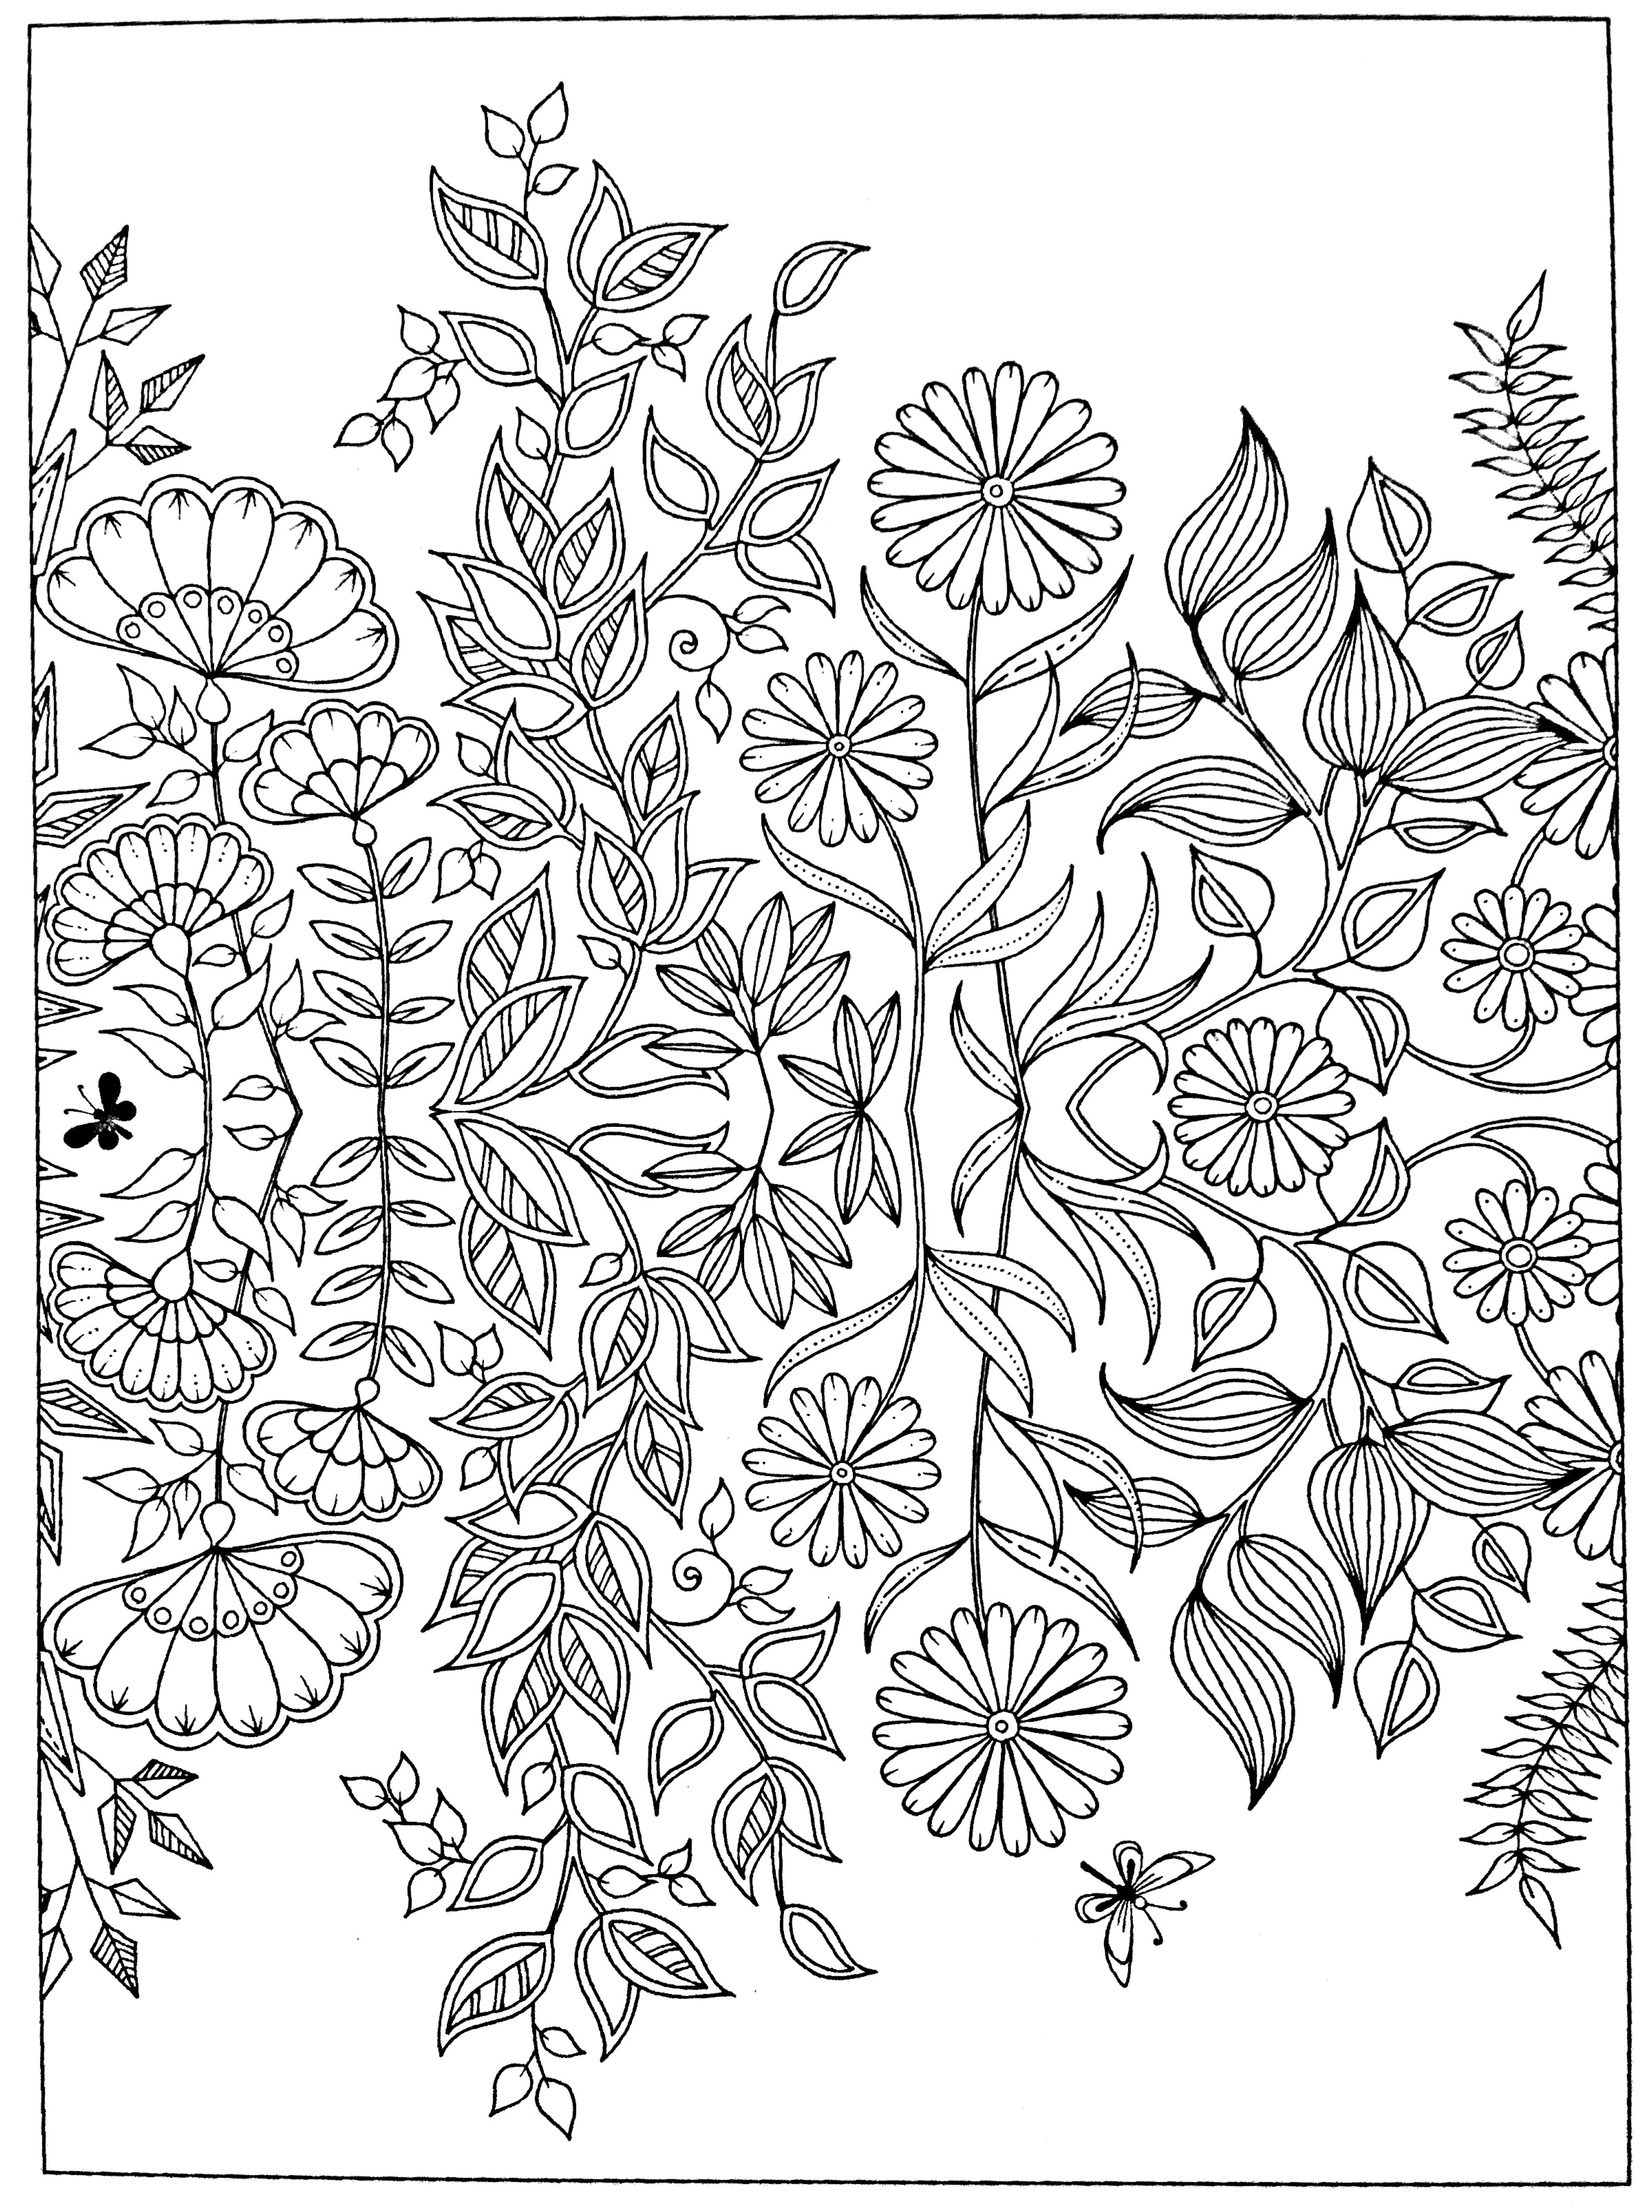 garden coloring secret garden free coloring pages at getdrawings free coloring garden